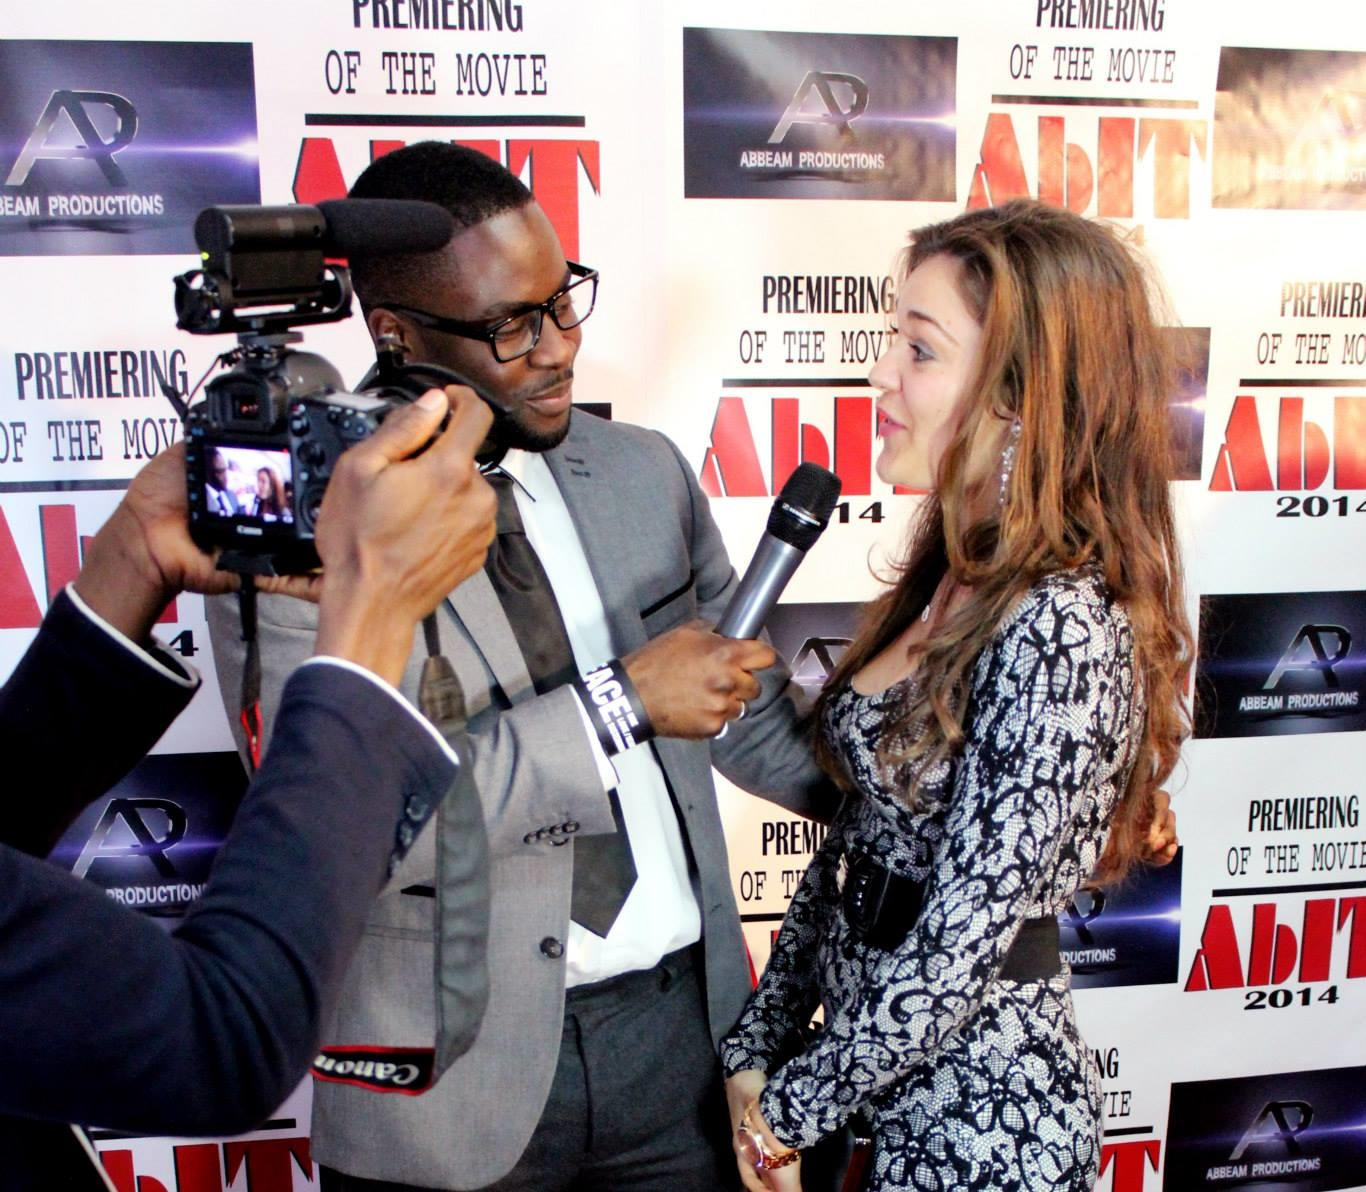 The London AbIT premiere, soon to be premièring in Ghana